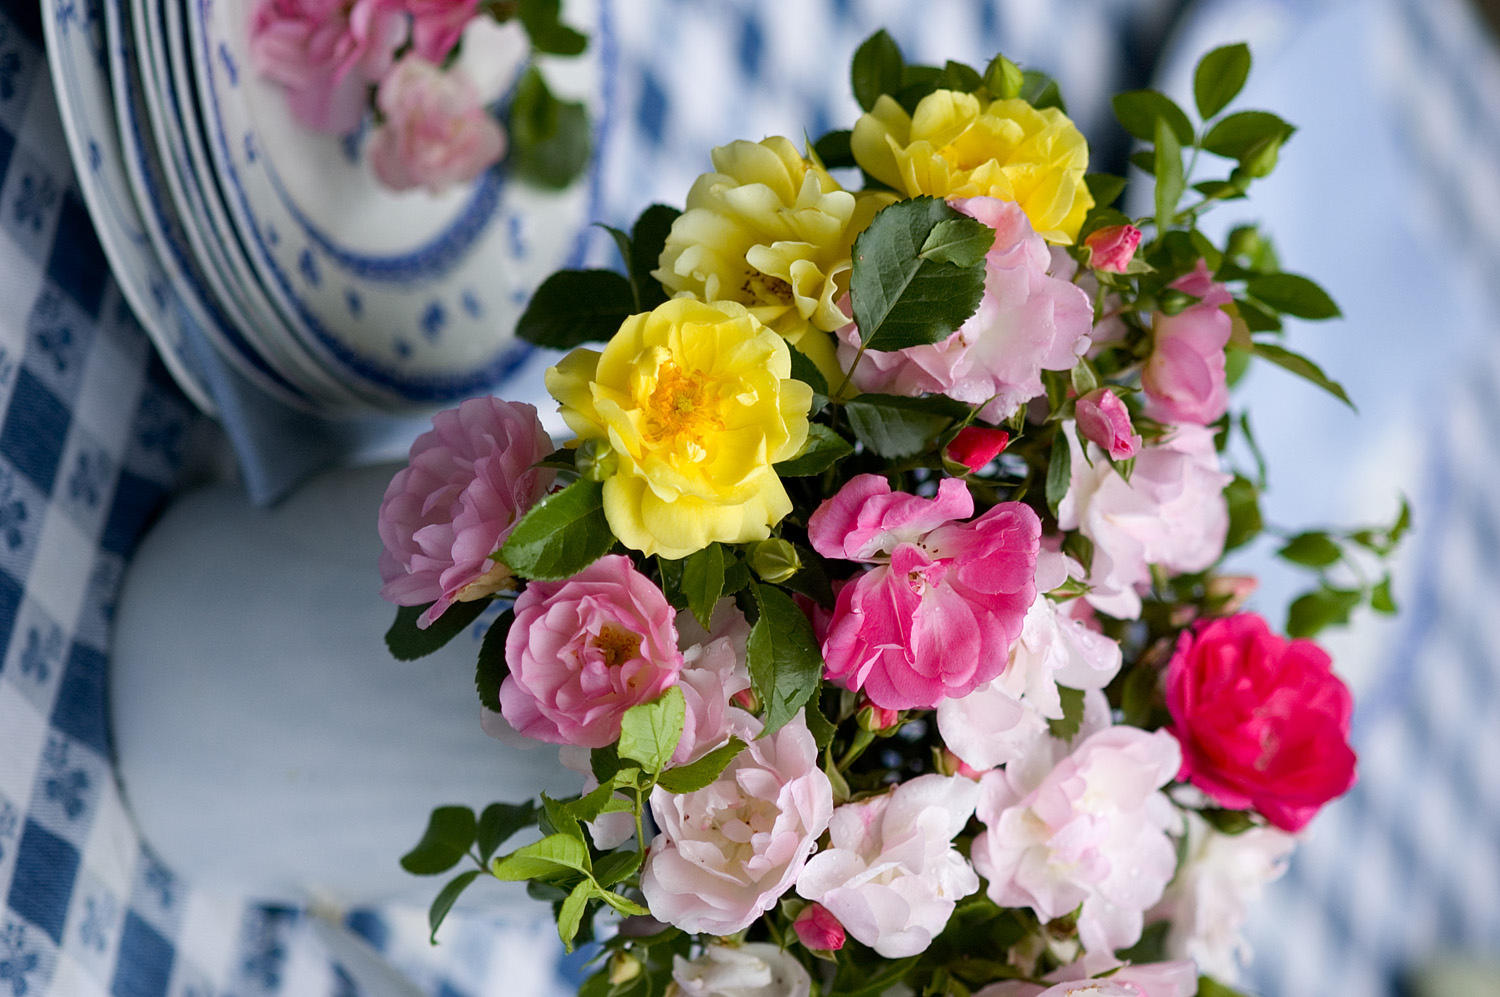 These fresh flowers work well within the garden